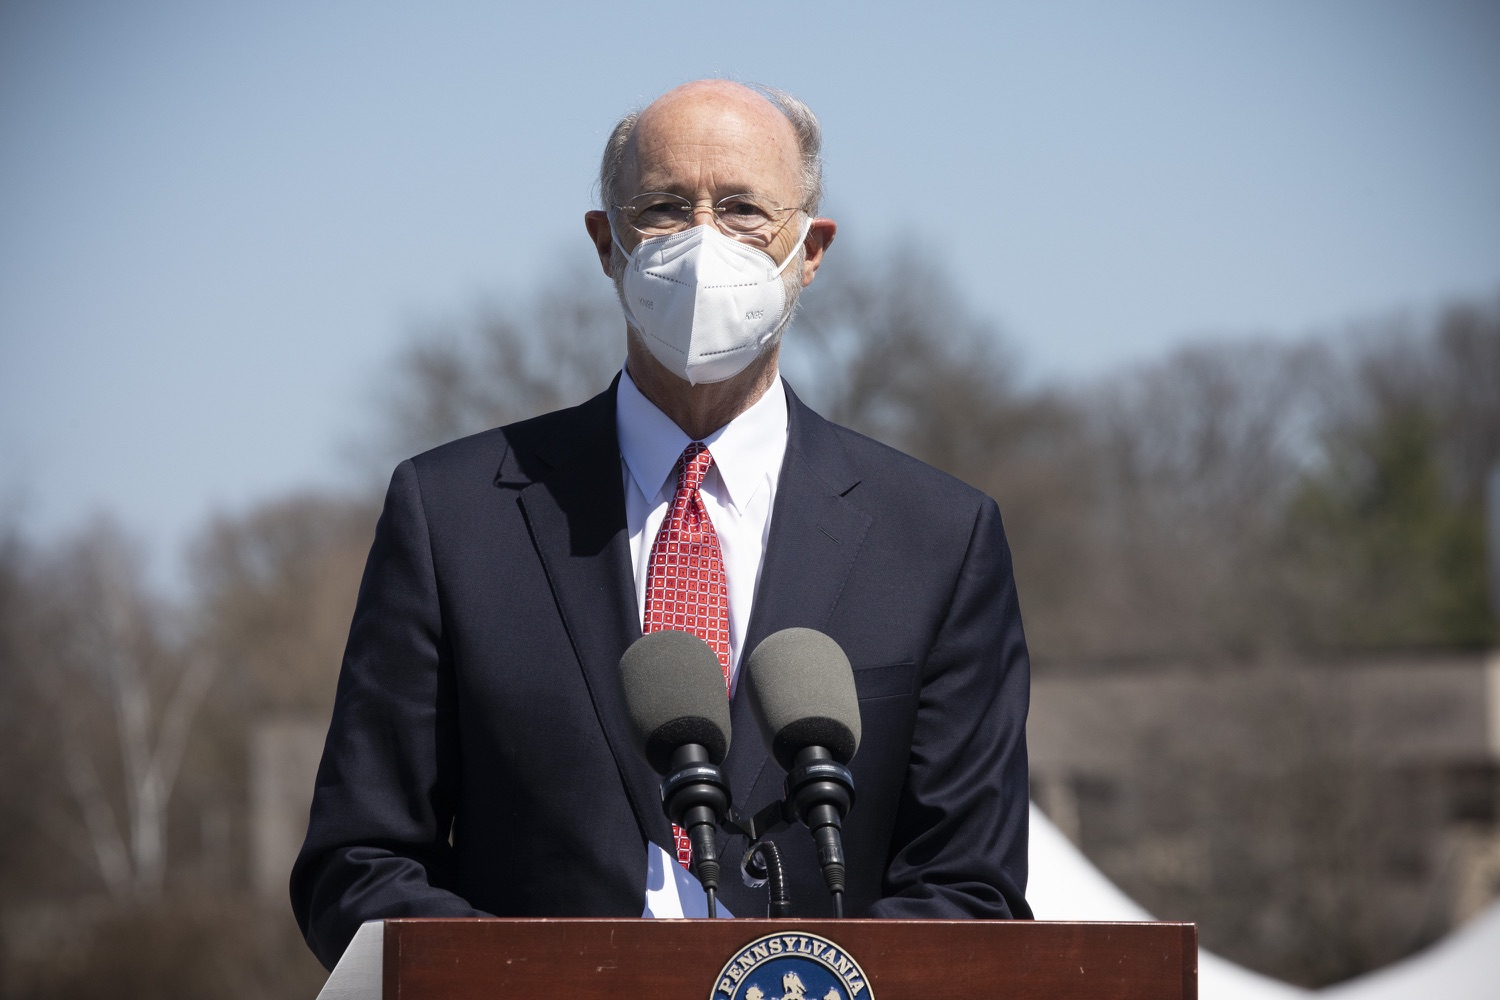 """<a href=""""https://filesource.wostreaming.net/commonwealthofpa/photo/18631_gov_hacc_vaccine_dz_015.jpg"""" target=""""_blank"""">⇣Download Photo<br></a>Pennsylvania Governor Tom Wolf speaking with the press.  Governor Wolf today visited the COVID-19 drive-thru mass vaccination clinic for Dauphin County residents at Harrisburg Area Community College. The drive-thru clinic was developed in partnership with UPMC Pinnacle and Dauphin County. He was joined by UPMC Pinnacle President Phil Guarneschelli and Dauphin County Commissioners Mike Pries and George P. Hartwick III.  HARRISBURG, PA -- March 30, 2021"""